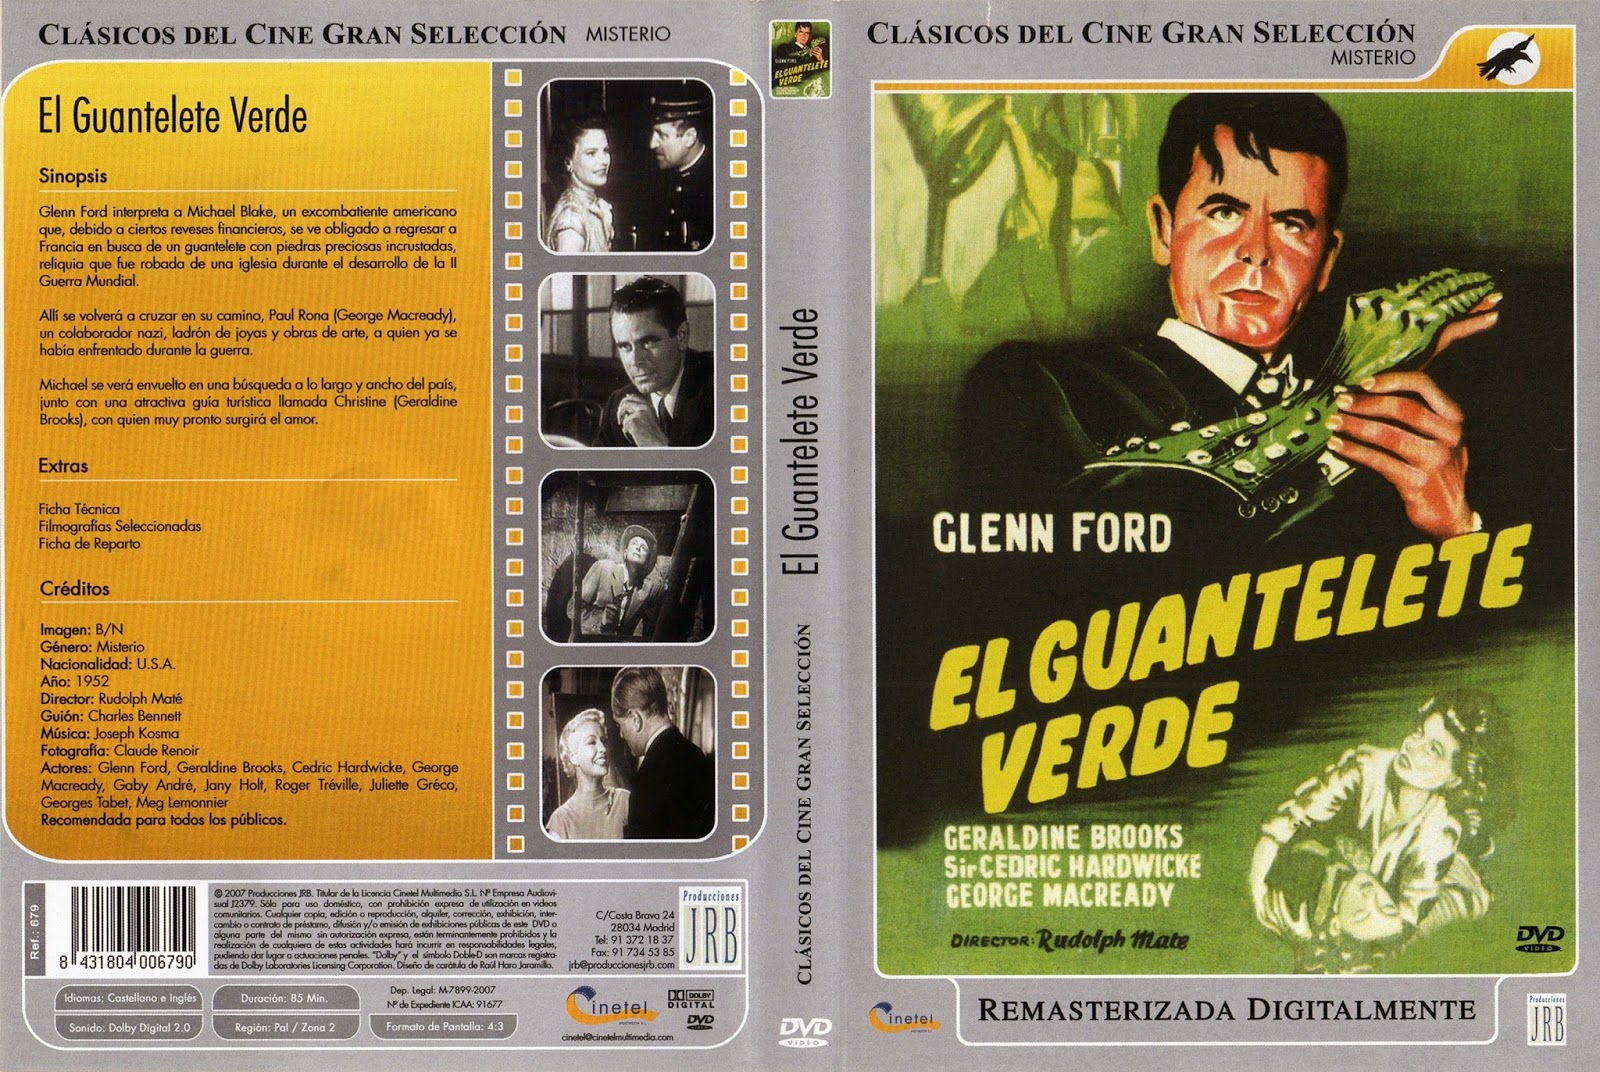 El guantelete verde (1942 - The Green Glove)